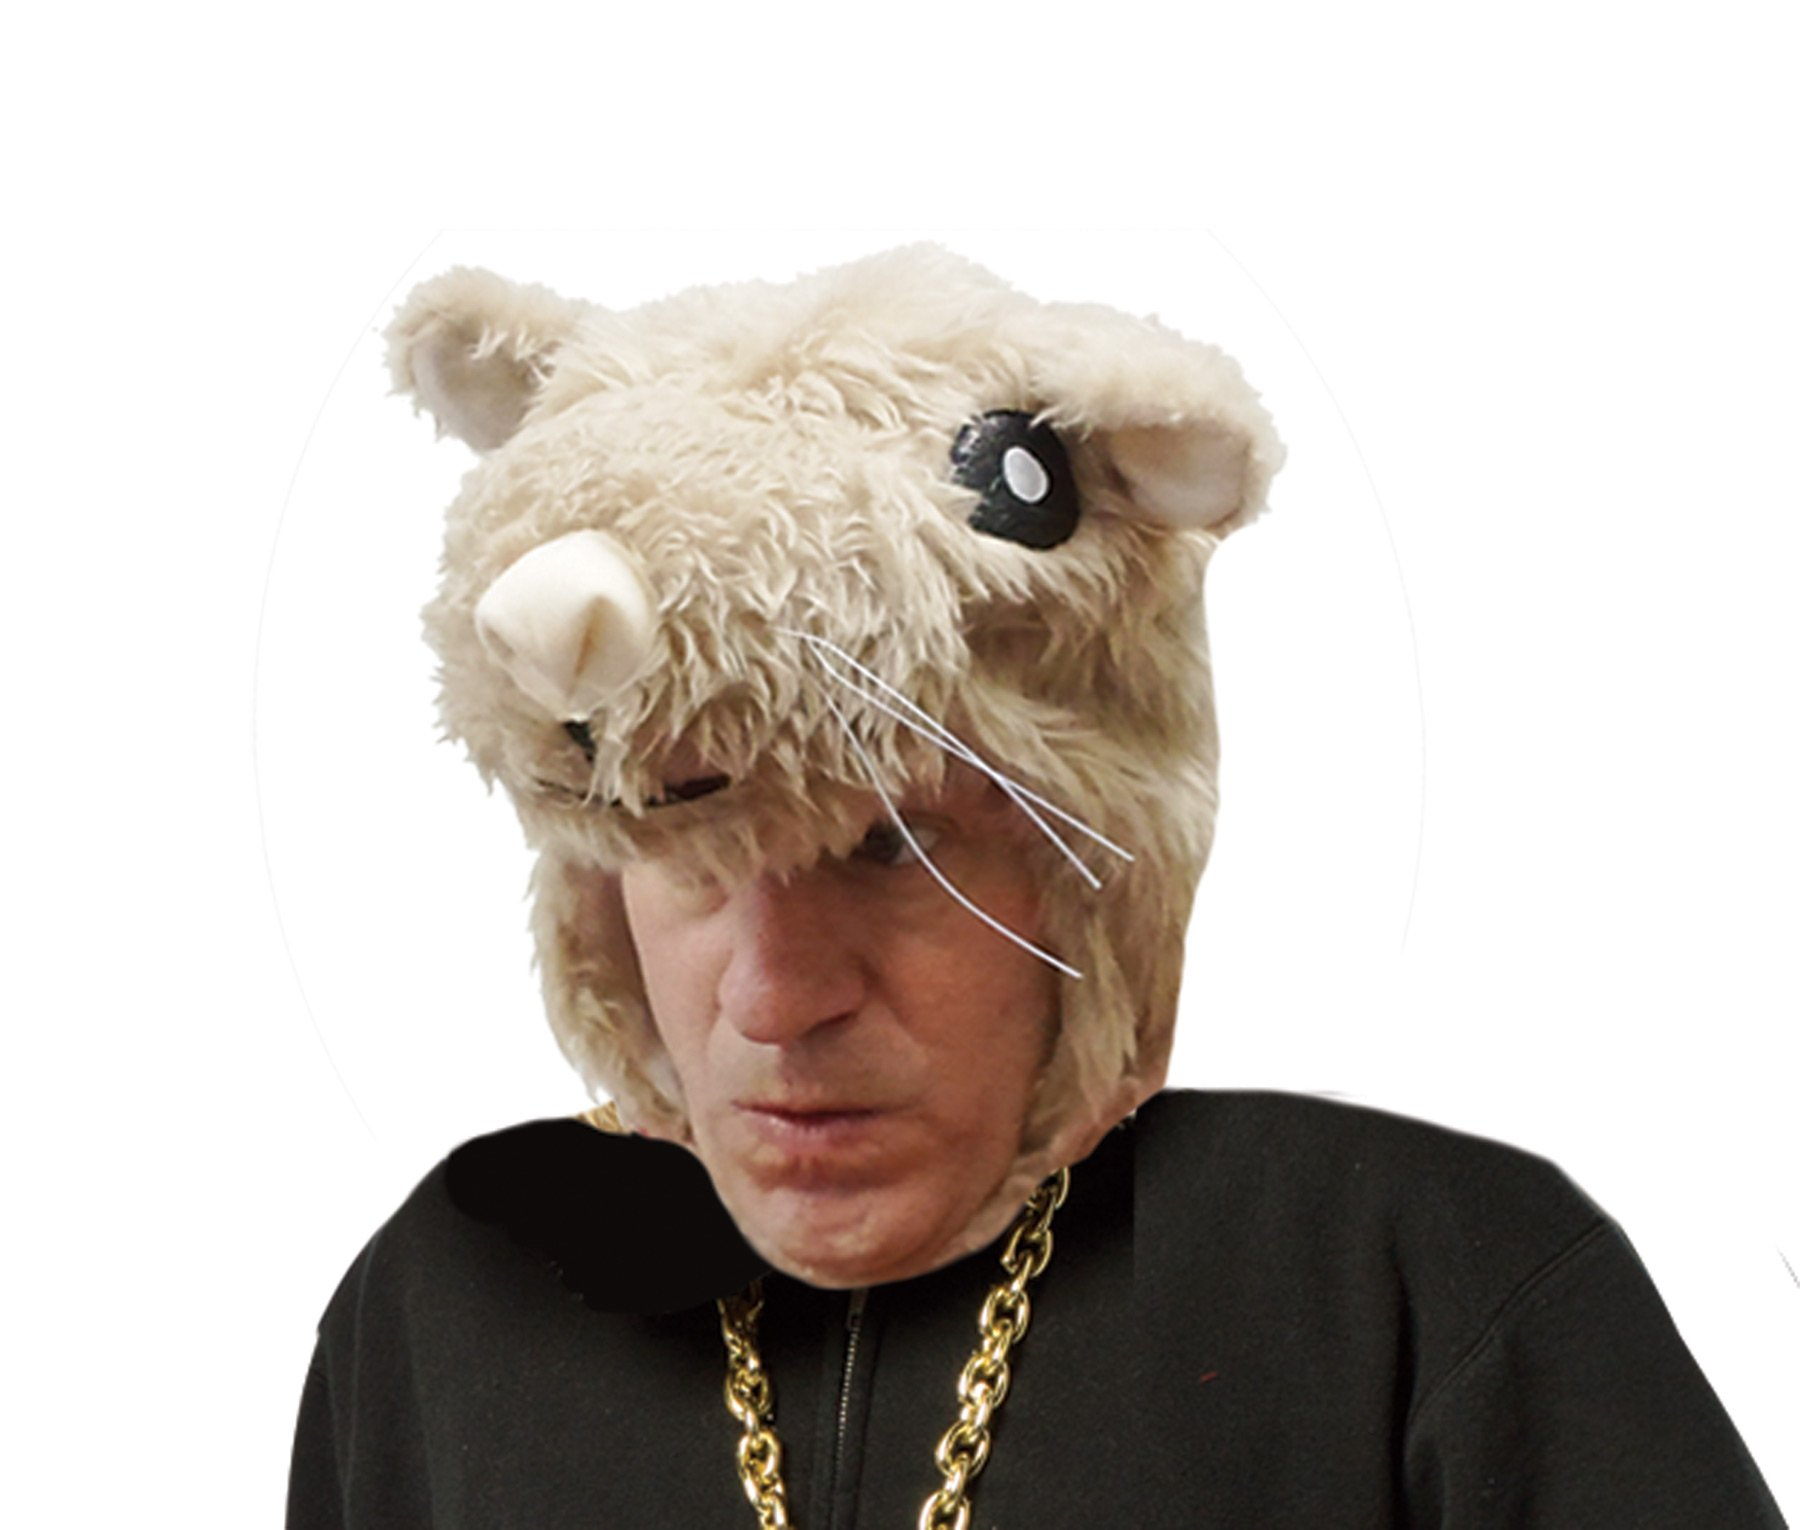 UHC Hamster Furry Mask Headpiece Hat Adult Halloween Costume Accessory